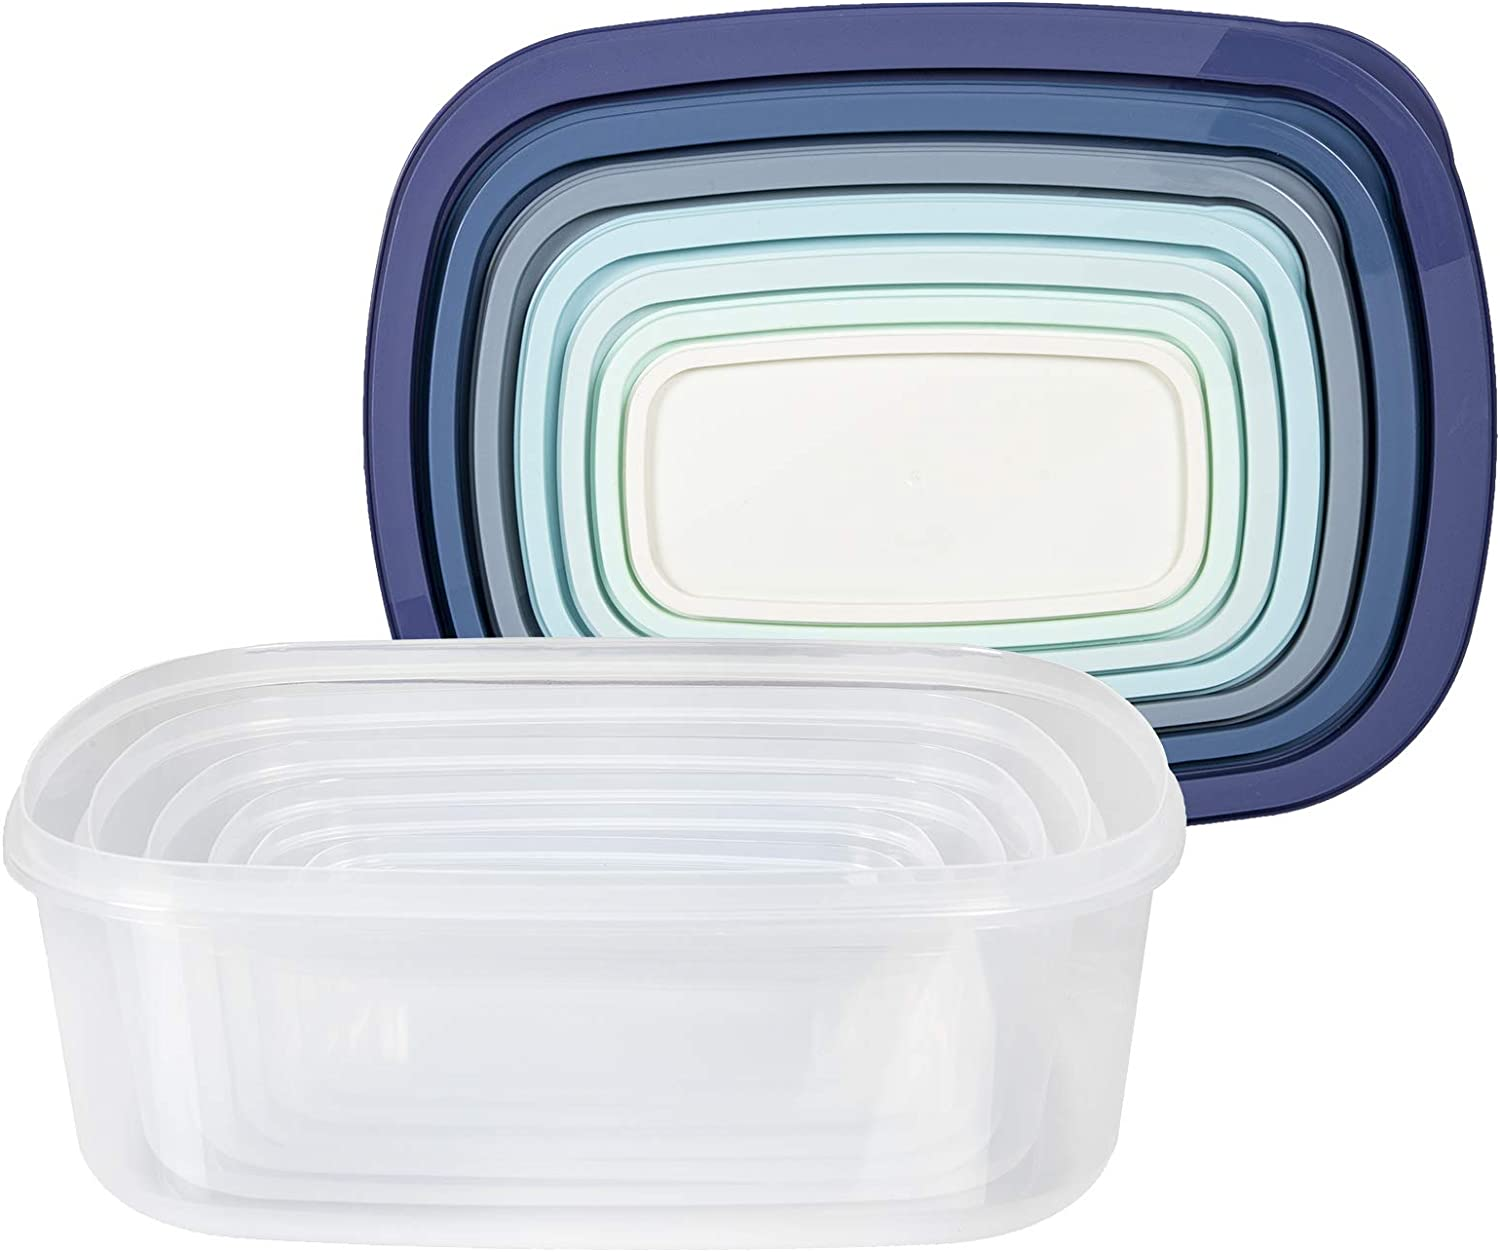 Cook with Color Rectangular Food Storage Containers with Lids, Easy-Find Nesting Plastic Containers, 14 Piece Set (Blue Ombre)